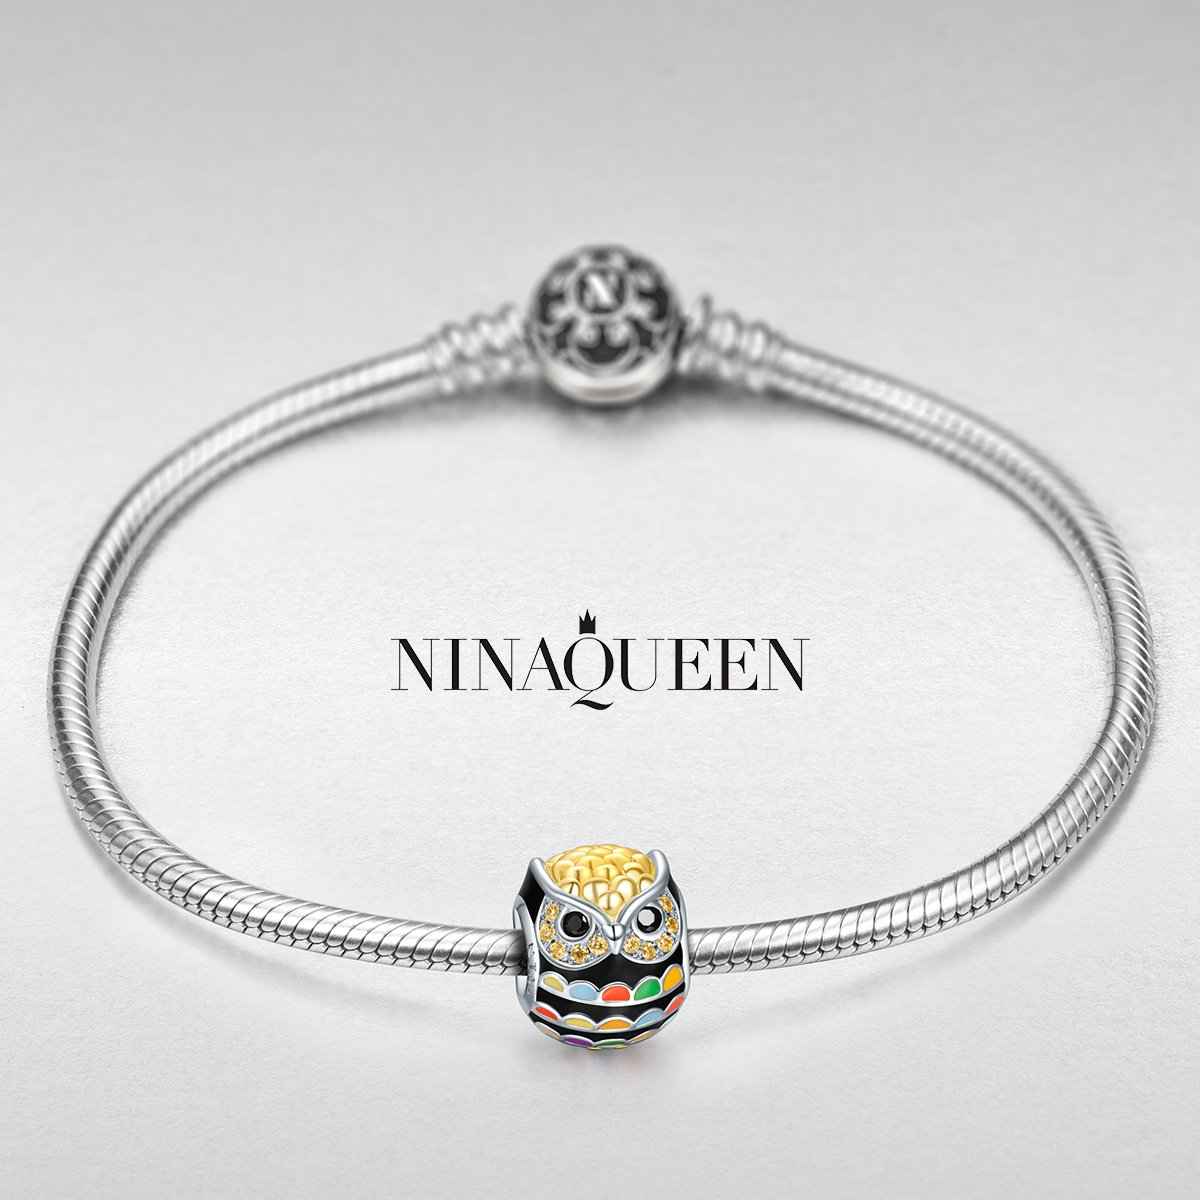 NinaQueen 925 Sterling Silver Owl Animal Bead Gold Plated Multicolor Enamel Charms for Pandöra Bracelets Birthday Anniversary Christmas Jewelry Gifts for Teen Girls Kids Sisters Daughter Girlfriend by NINAQUEEN (Image #2)